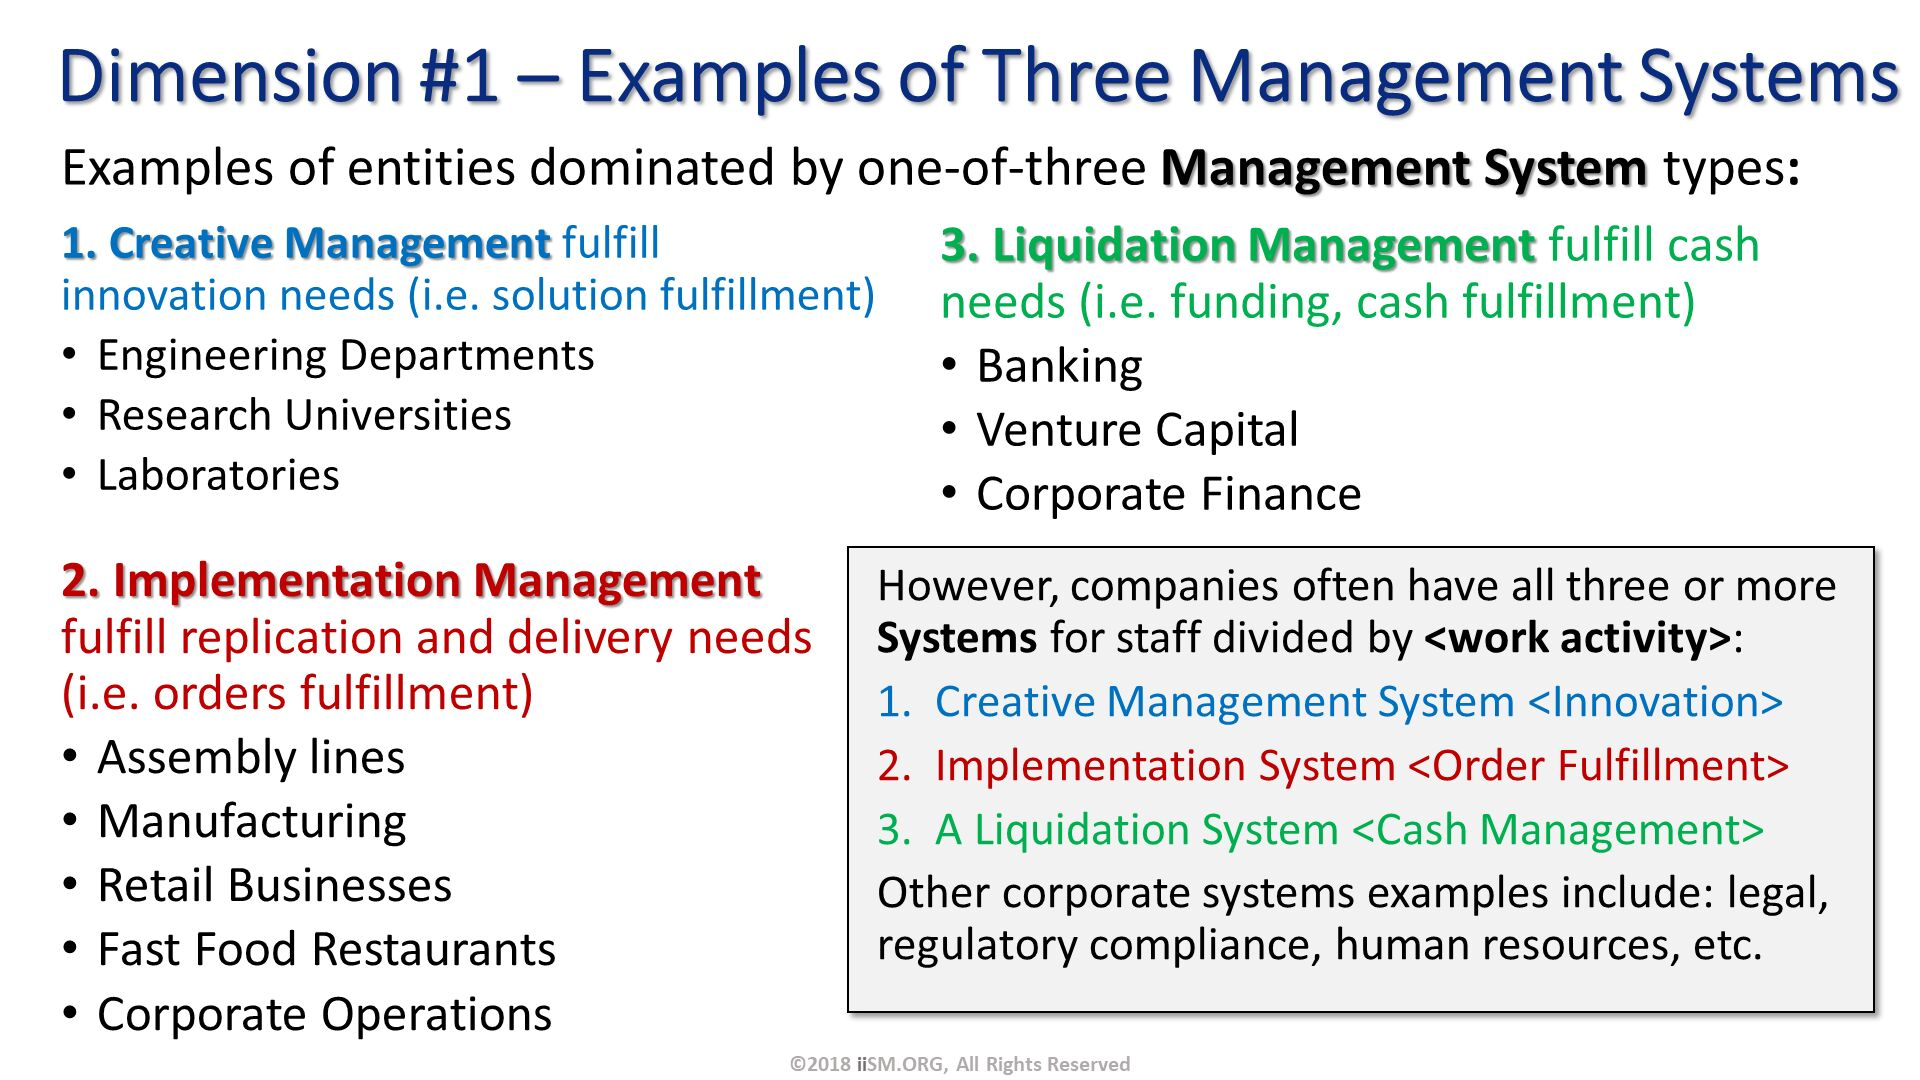 Examples of entities dominated by one-of-three Management System types:. Dimension #1 – Examples of Three Management Systems. ©2018 iiSM.ORG, All Rights Reserved. 1. Creative Management fulfill innovation needs (i.e. solution fulfillment) Engineering Departments Research Universities Laboratories  . 2. Implementation Management fulfill replication and delivery needs (i.e. orders fulfillment)  Assembly lines Manufacturing Retail Businesses Fast Food Restaurants Corporate Operations . 3. Liquidation Management fulfill cash needs (i.e. funding, cash fulfillment) Banking Venture Capital Corporate Finance . However, companies often have all three or more Systems for staff divided by <work activity>: Creative Management System <Innovation>  Implementation System <Order Fulfillment>  A Liquidation System <Cash Management> Other corporate systems examples include: legal, regulatory compliance, human resources, etc. .